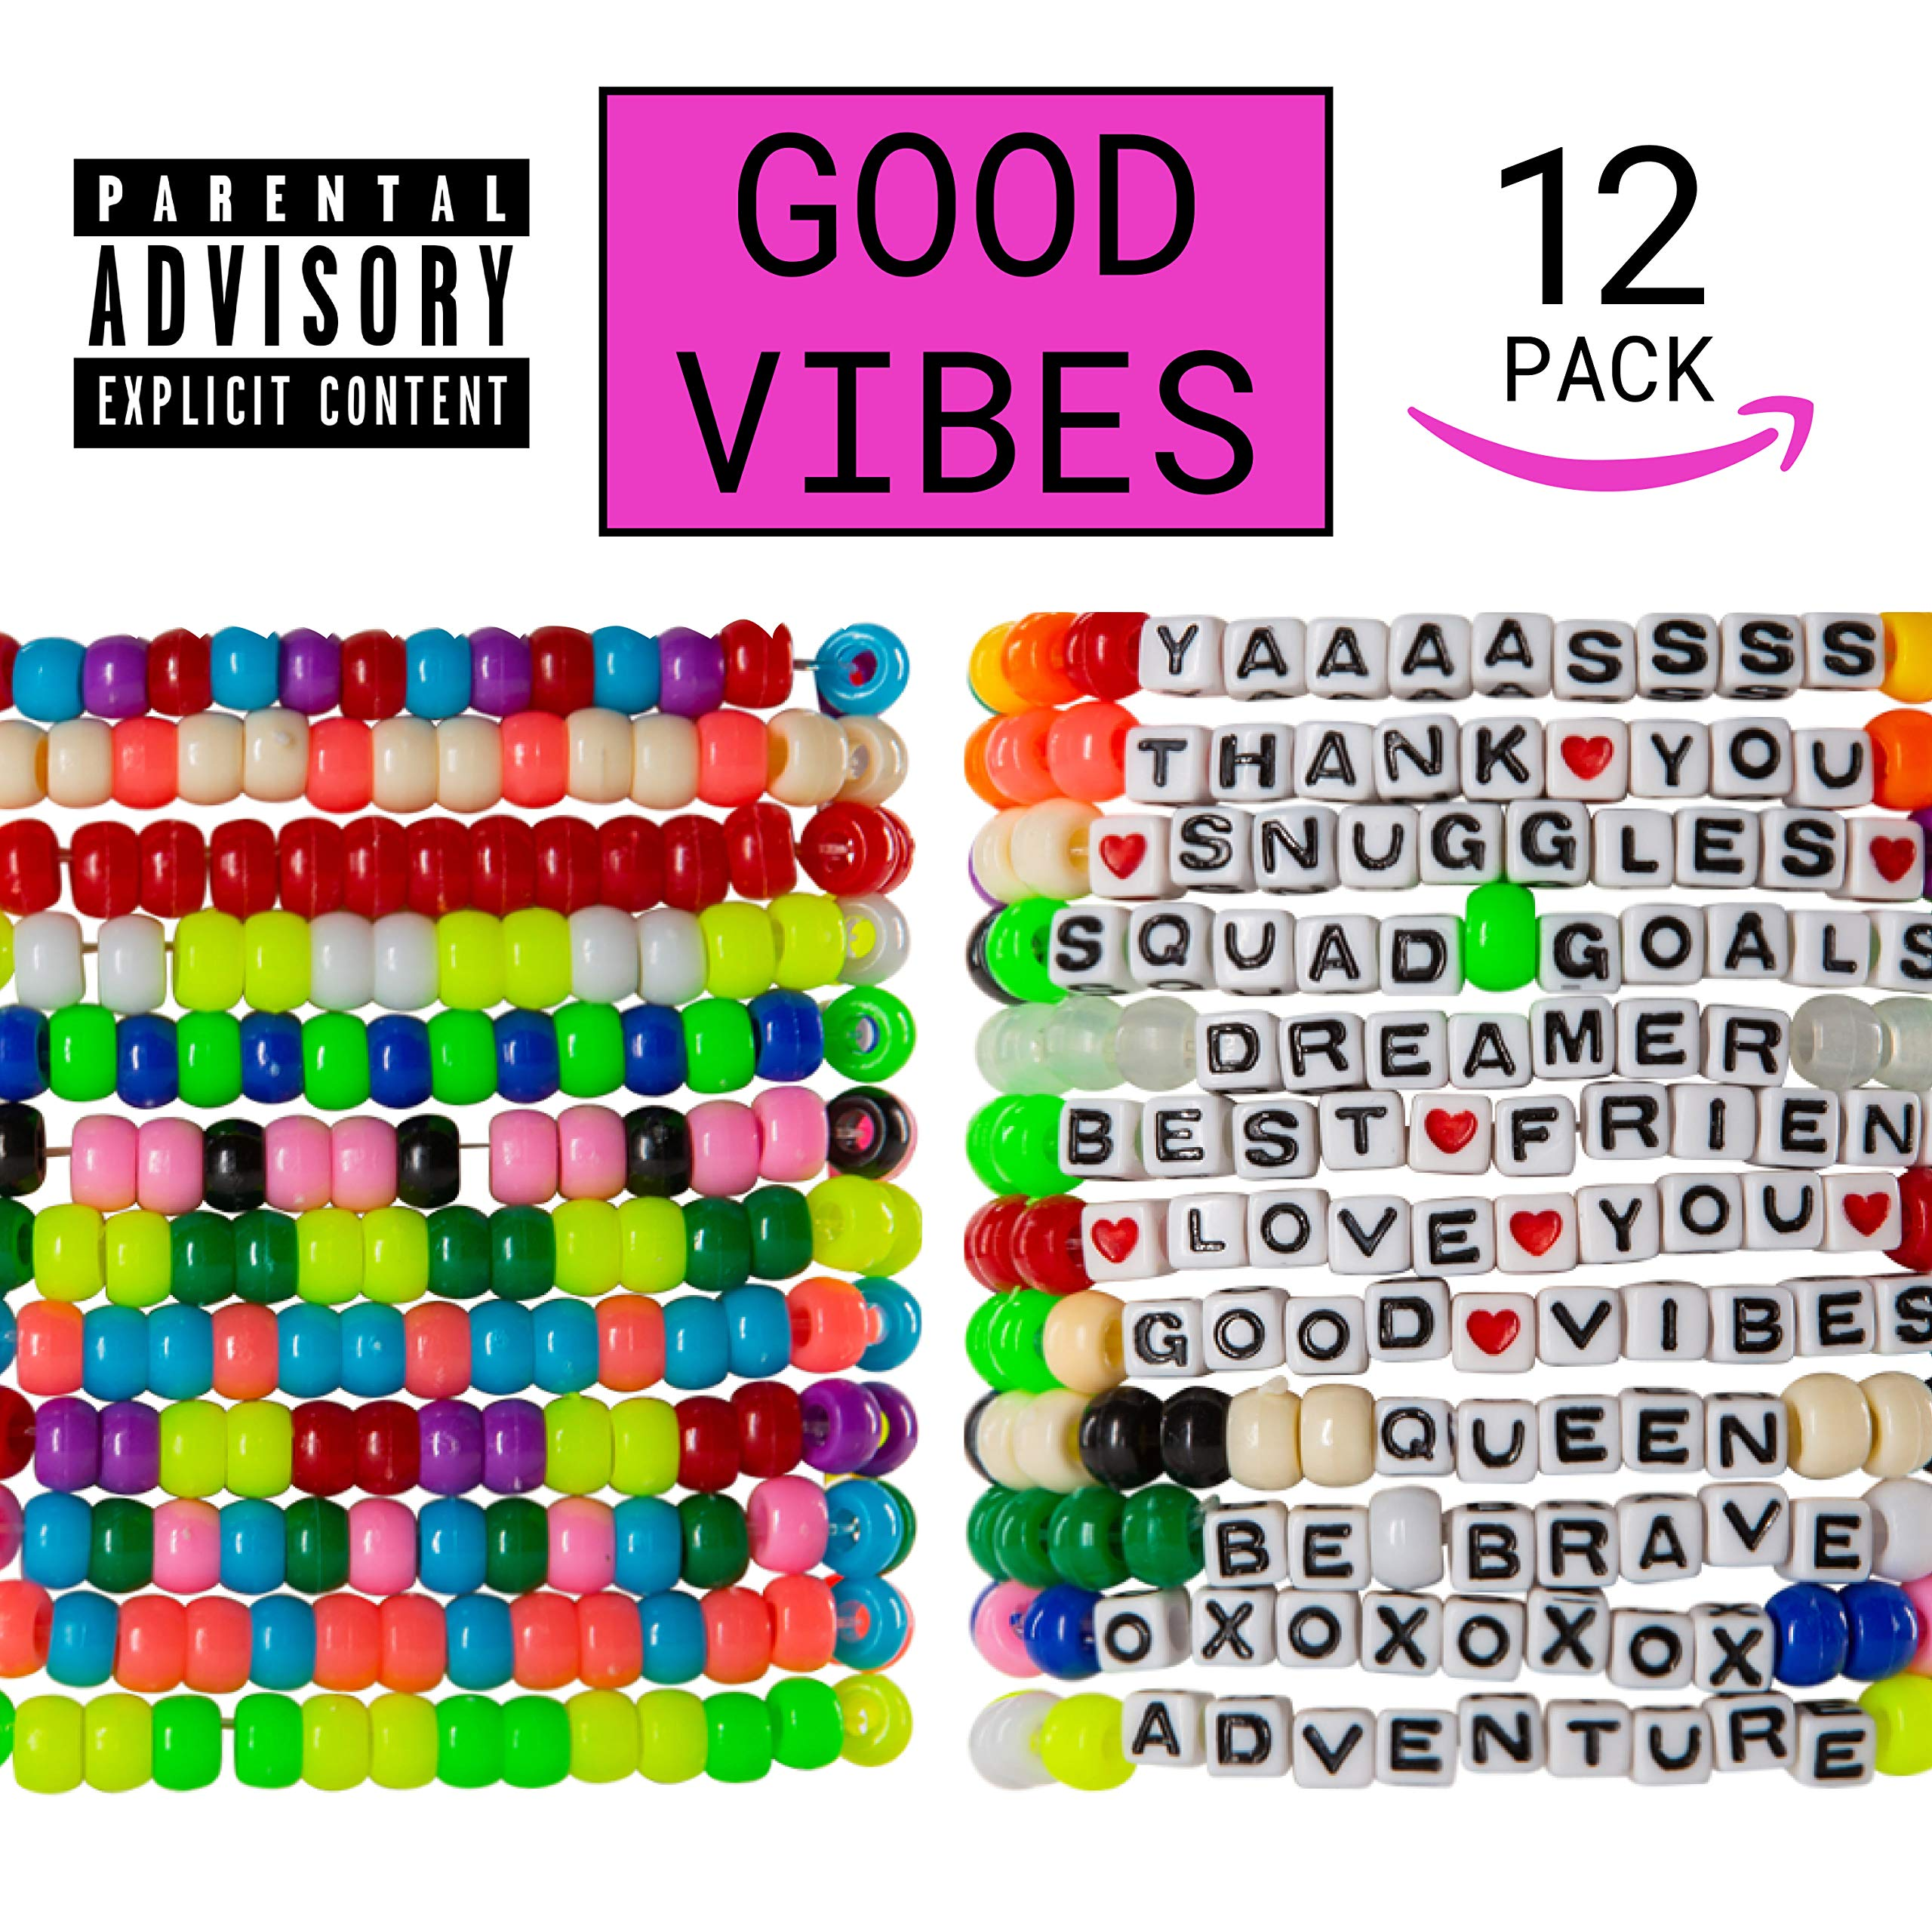 kandi bar Good Vibes Rave Bracelets (12-Pack) | Handmade Plur Accessory for EDM Music Festival Outfits | wear Stylish Colors & Authentic Phrases for Women, Men, NB| Every Pack is Unique | Explicit